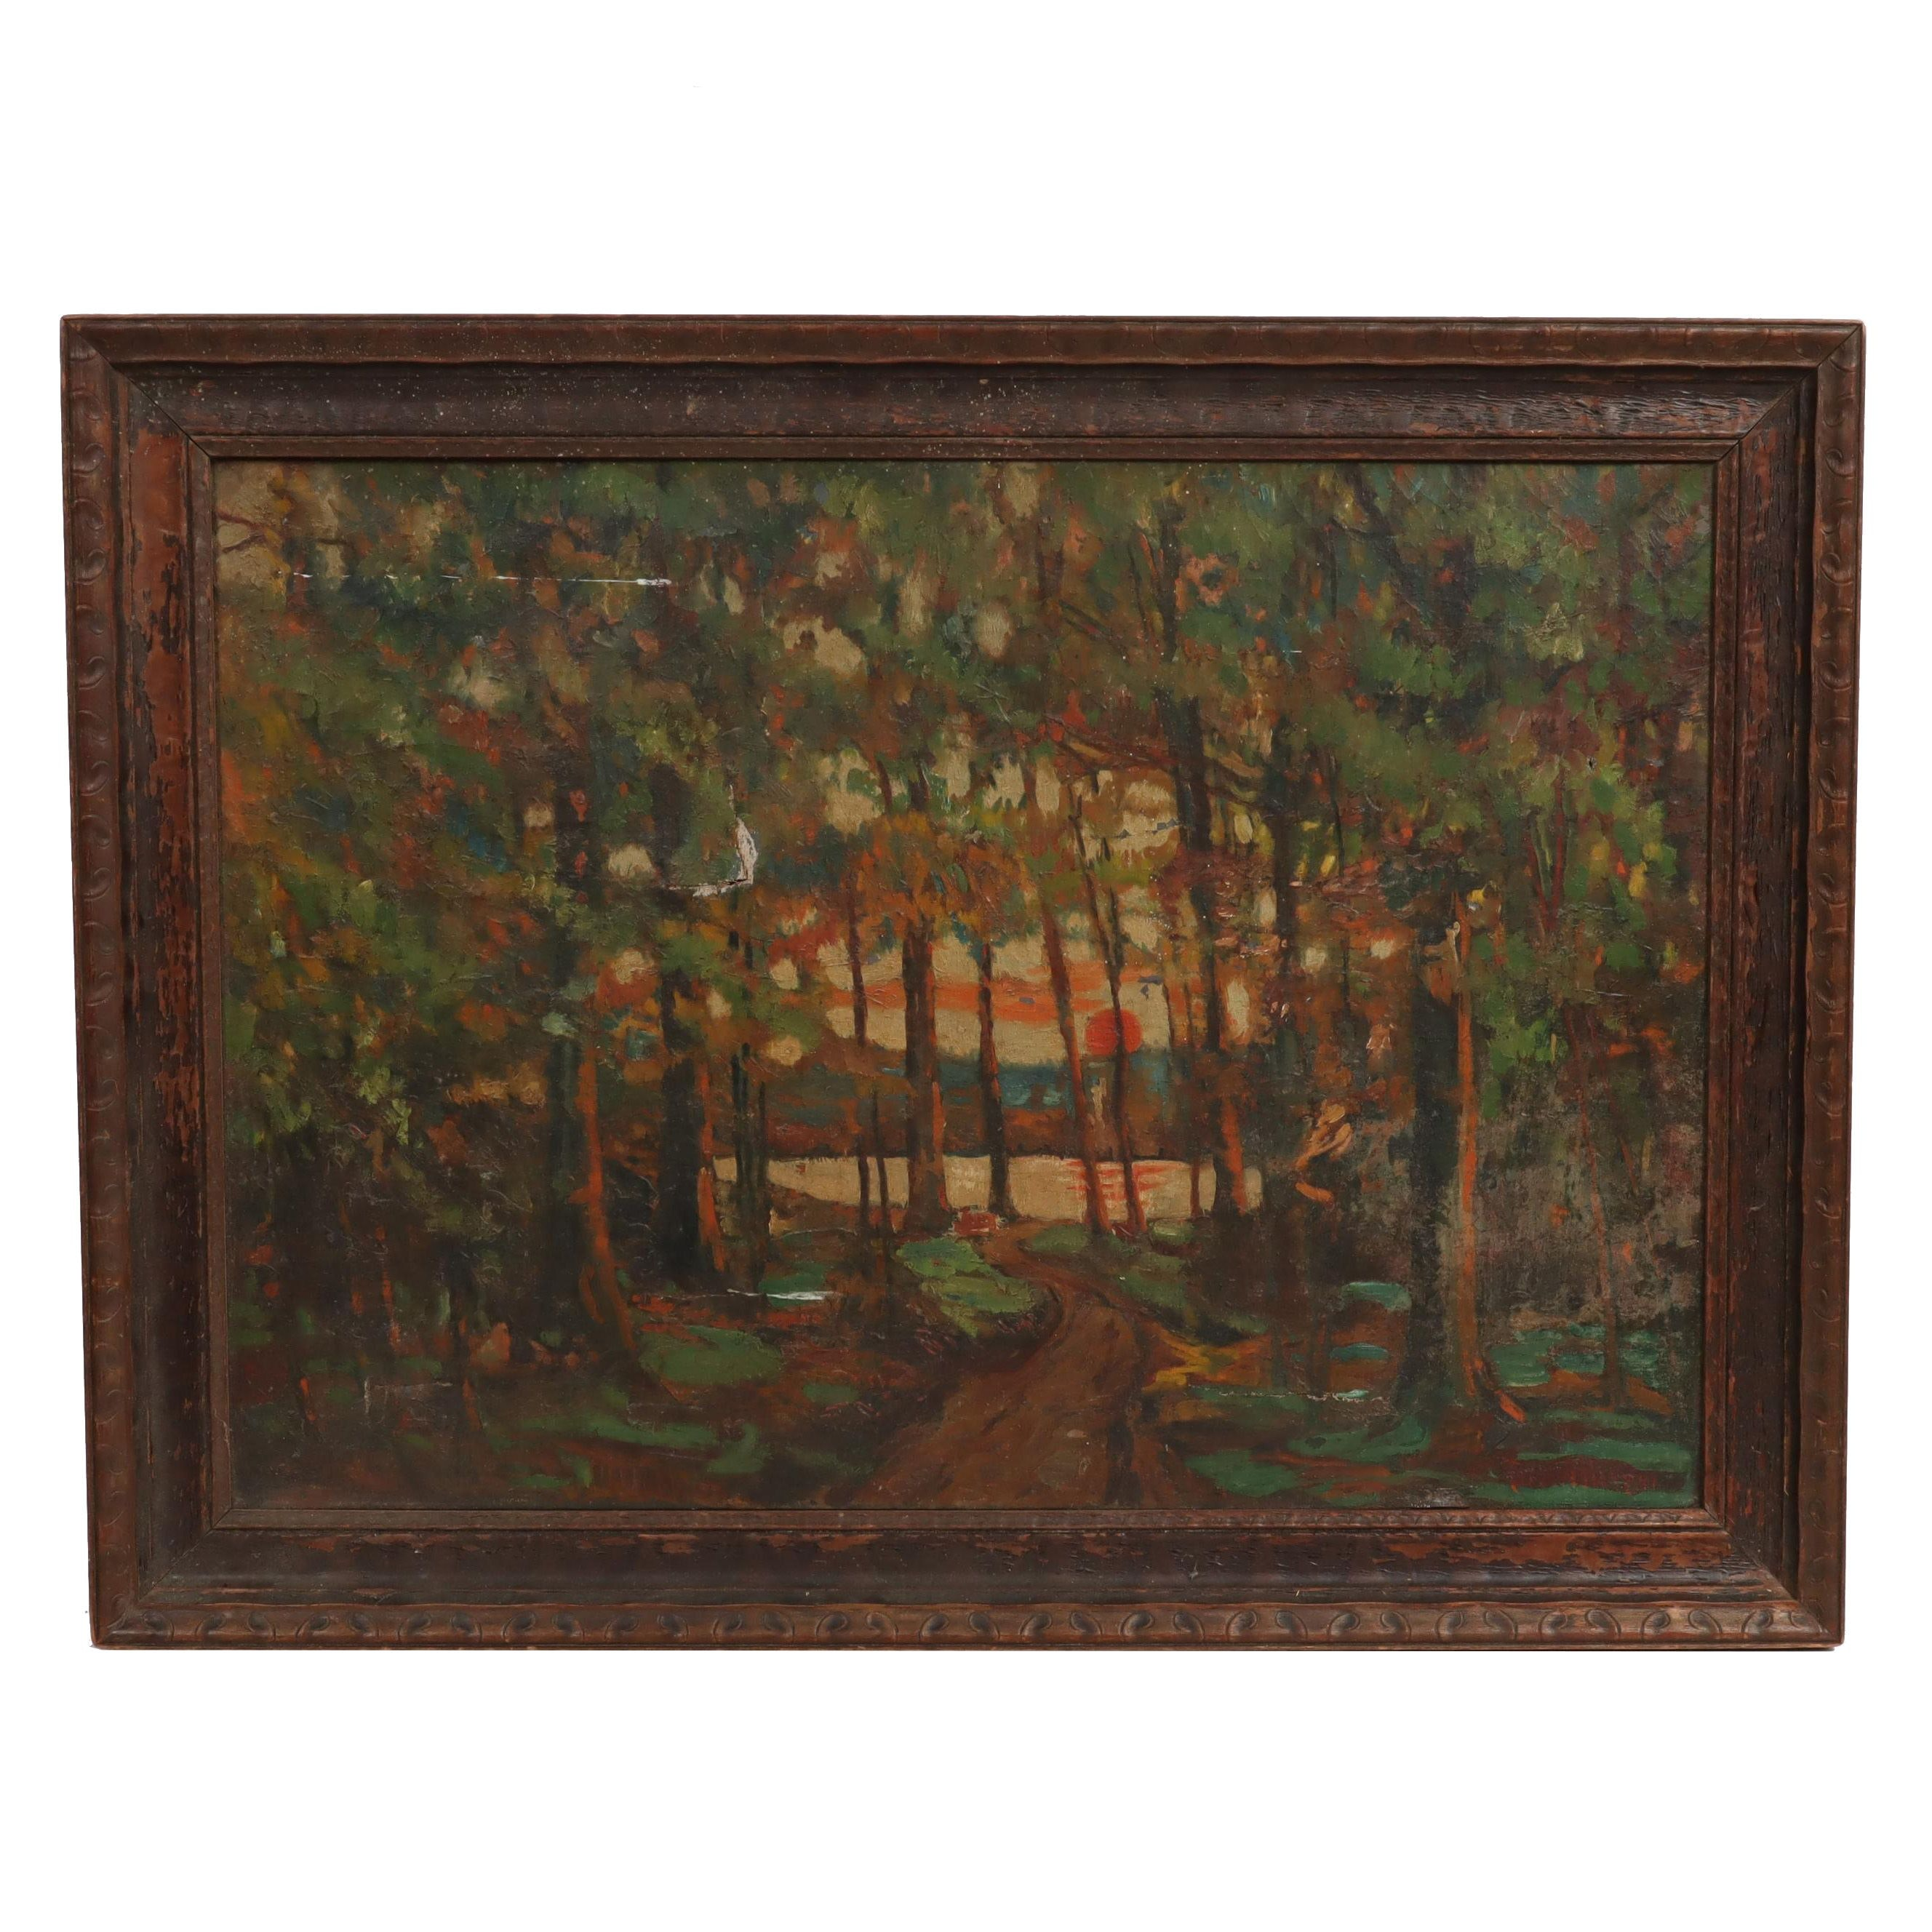 A. Harper Forest Landscape Oil Painting, Late 19th Century